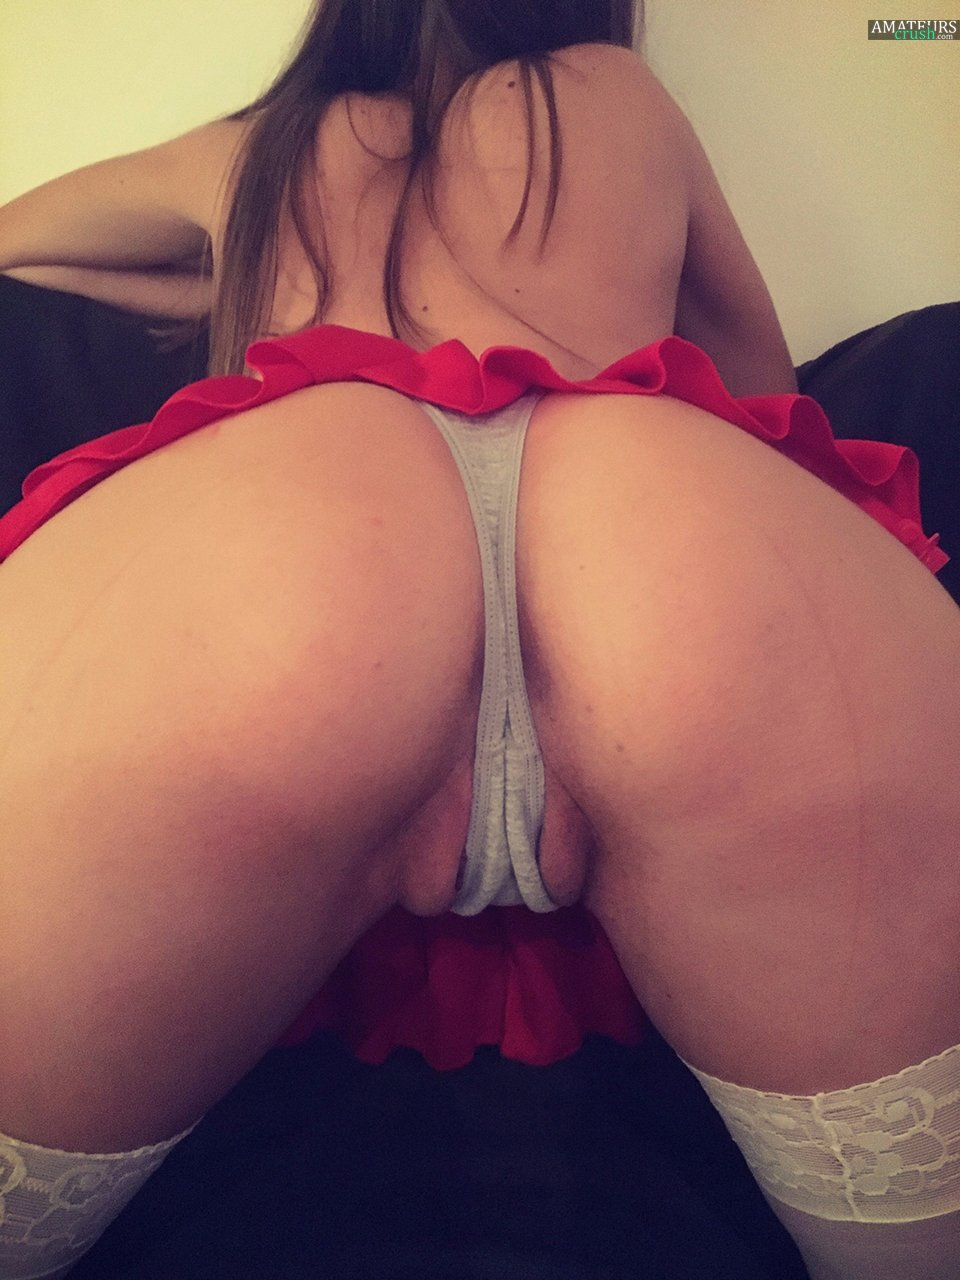 Fat ass wife bends over shows